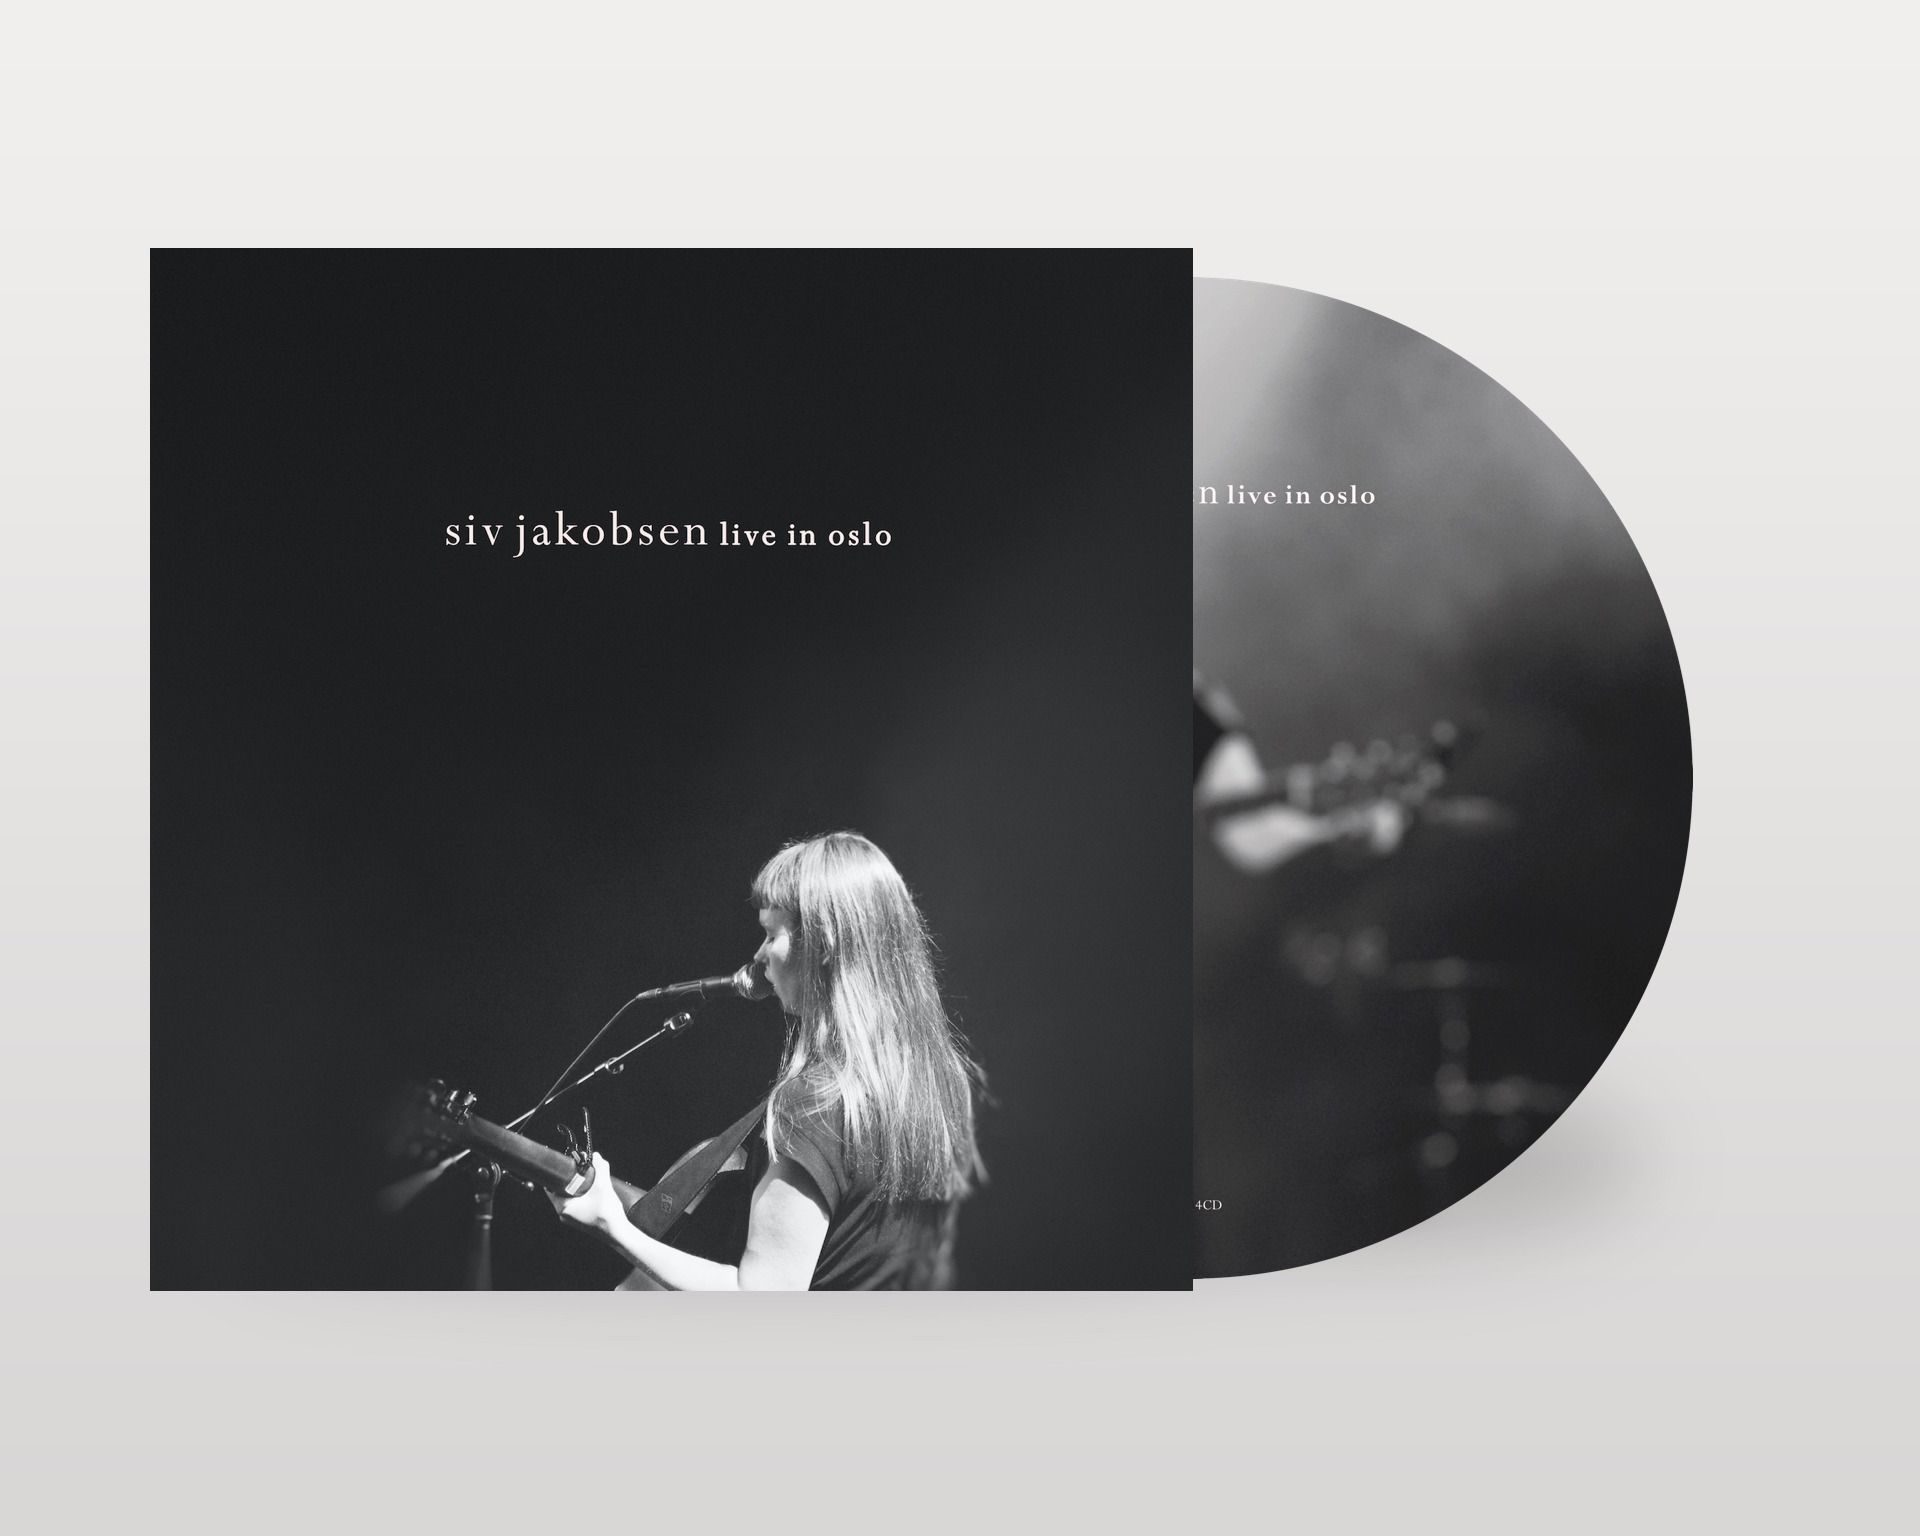 Live In Oslo CD + Digital Download (Signed or Unsigned) - Siv Jakobsen